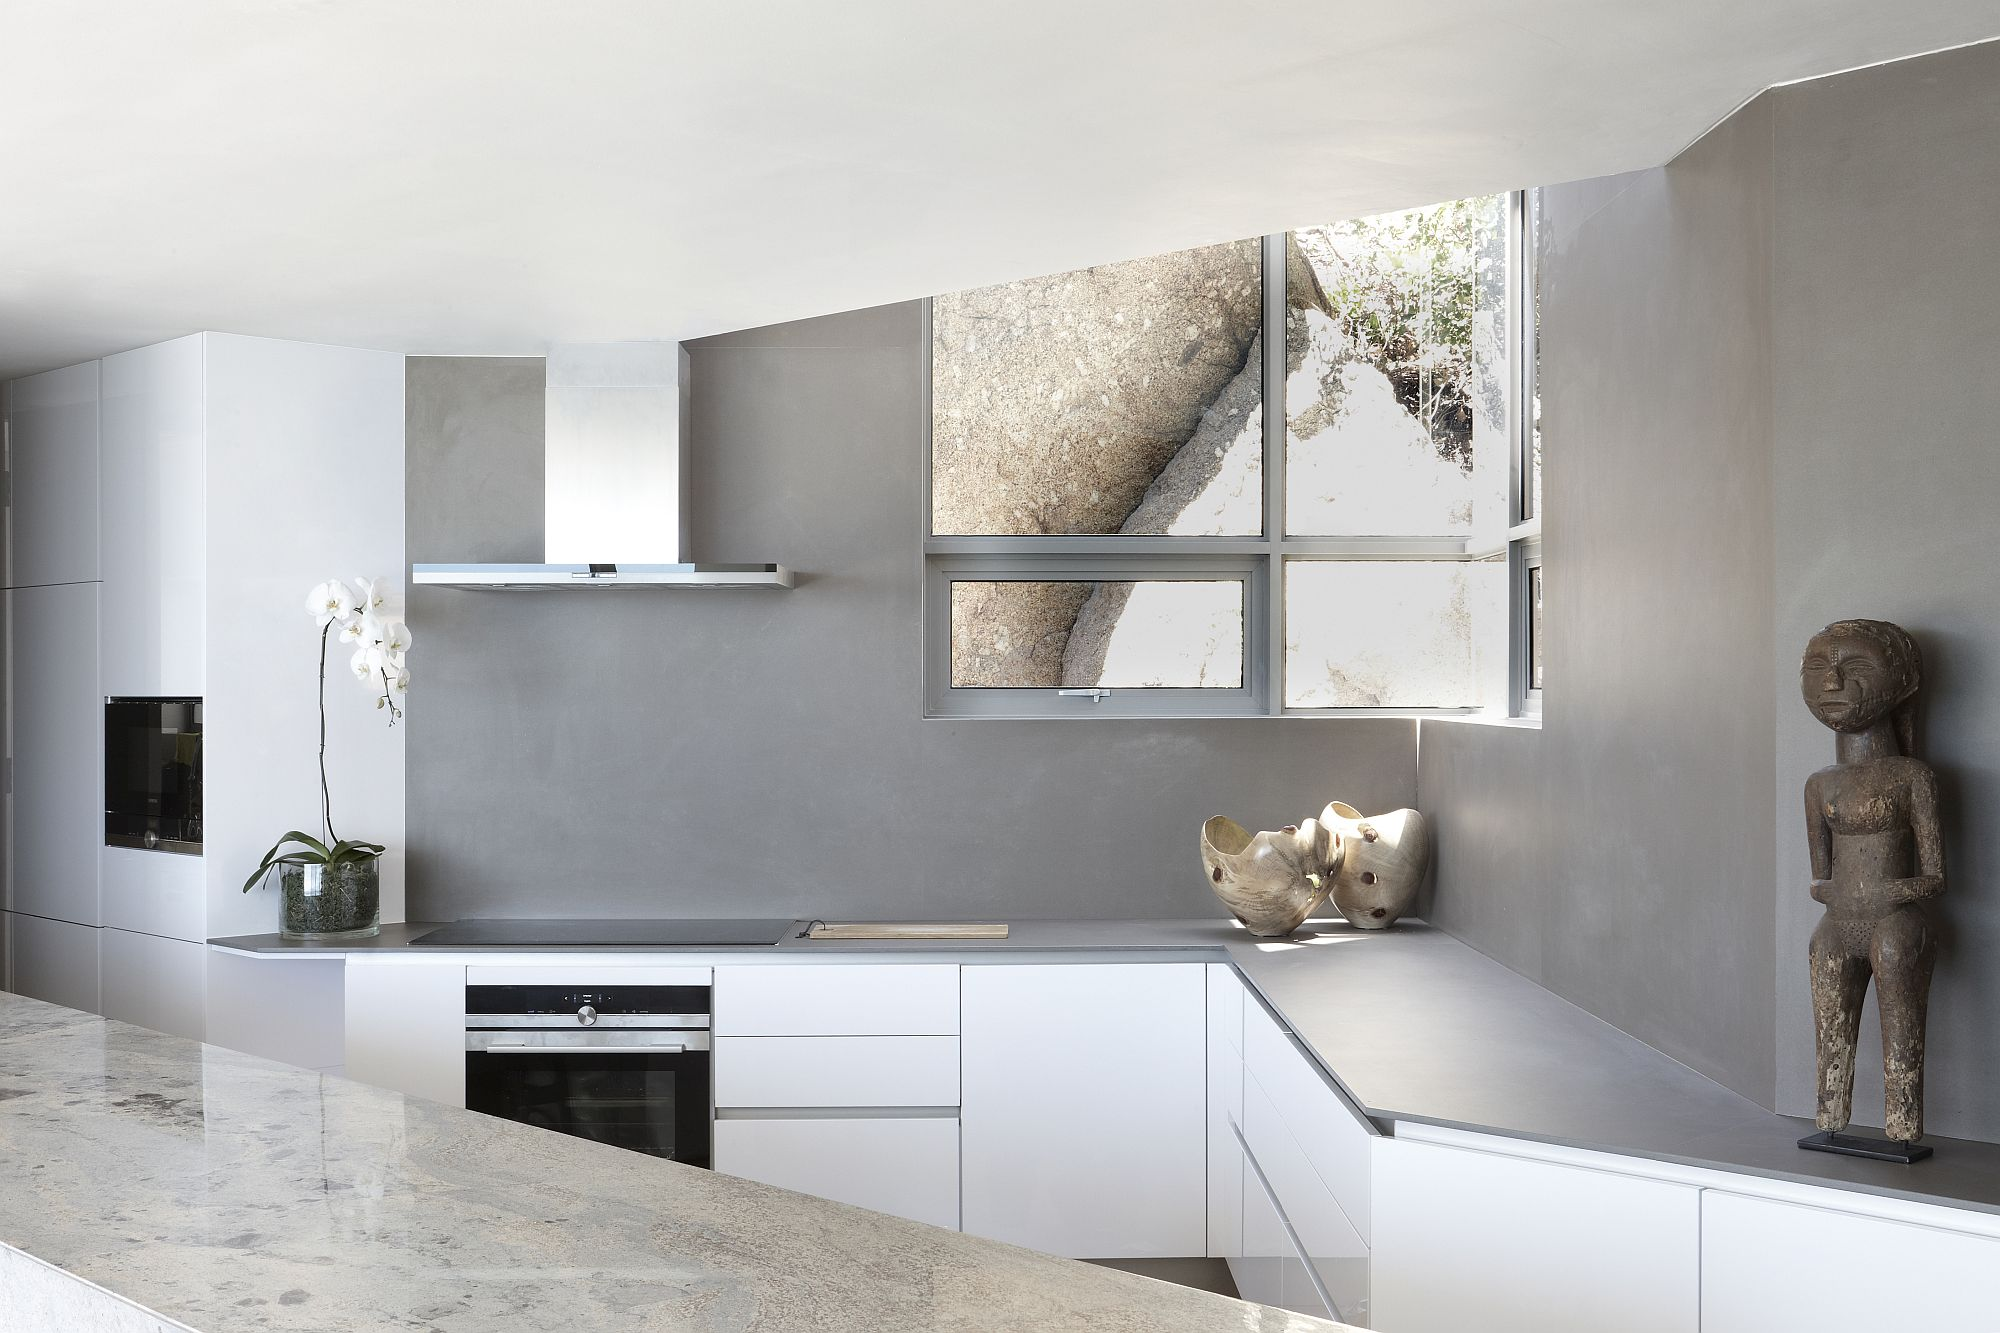 Gray and white contemporary kitchen with a view of the outdoors